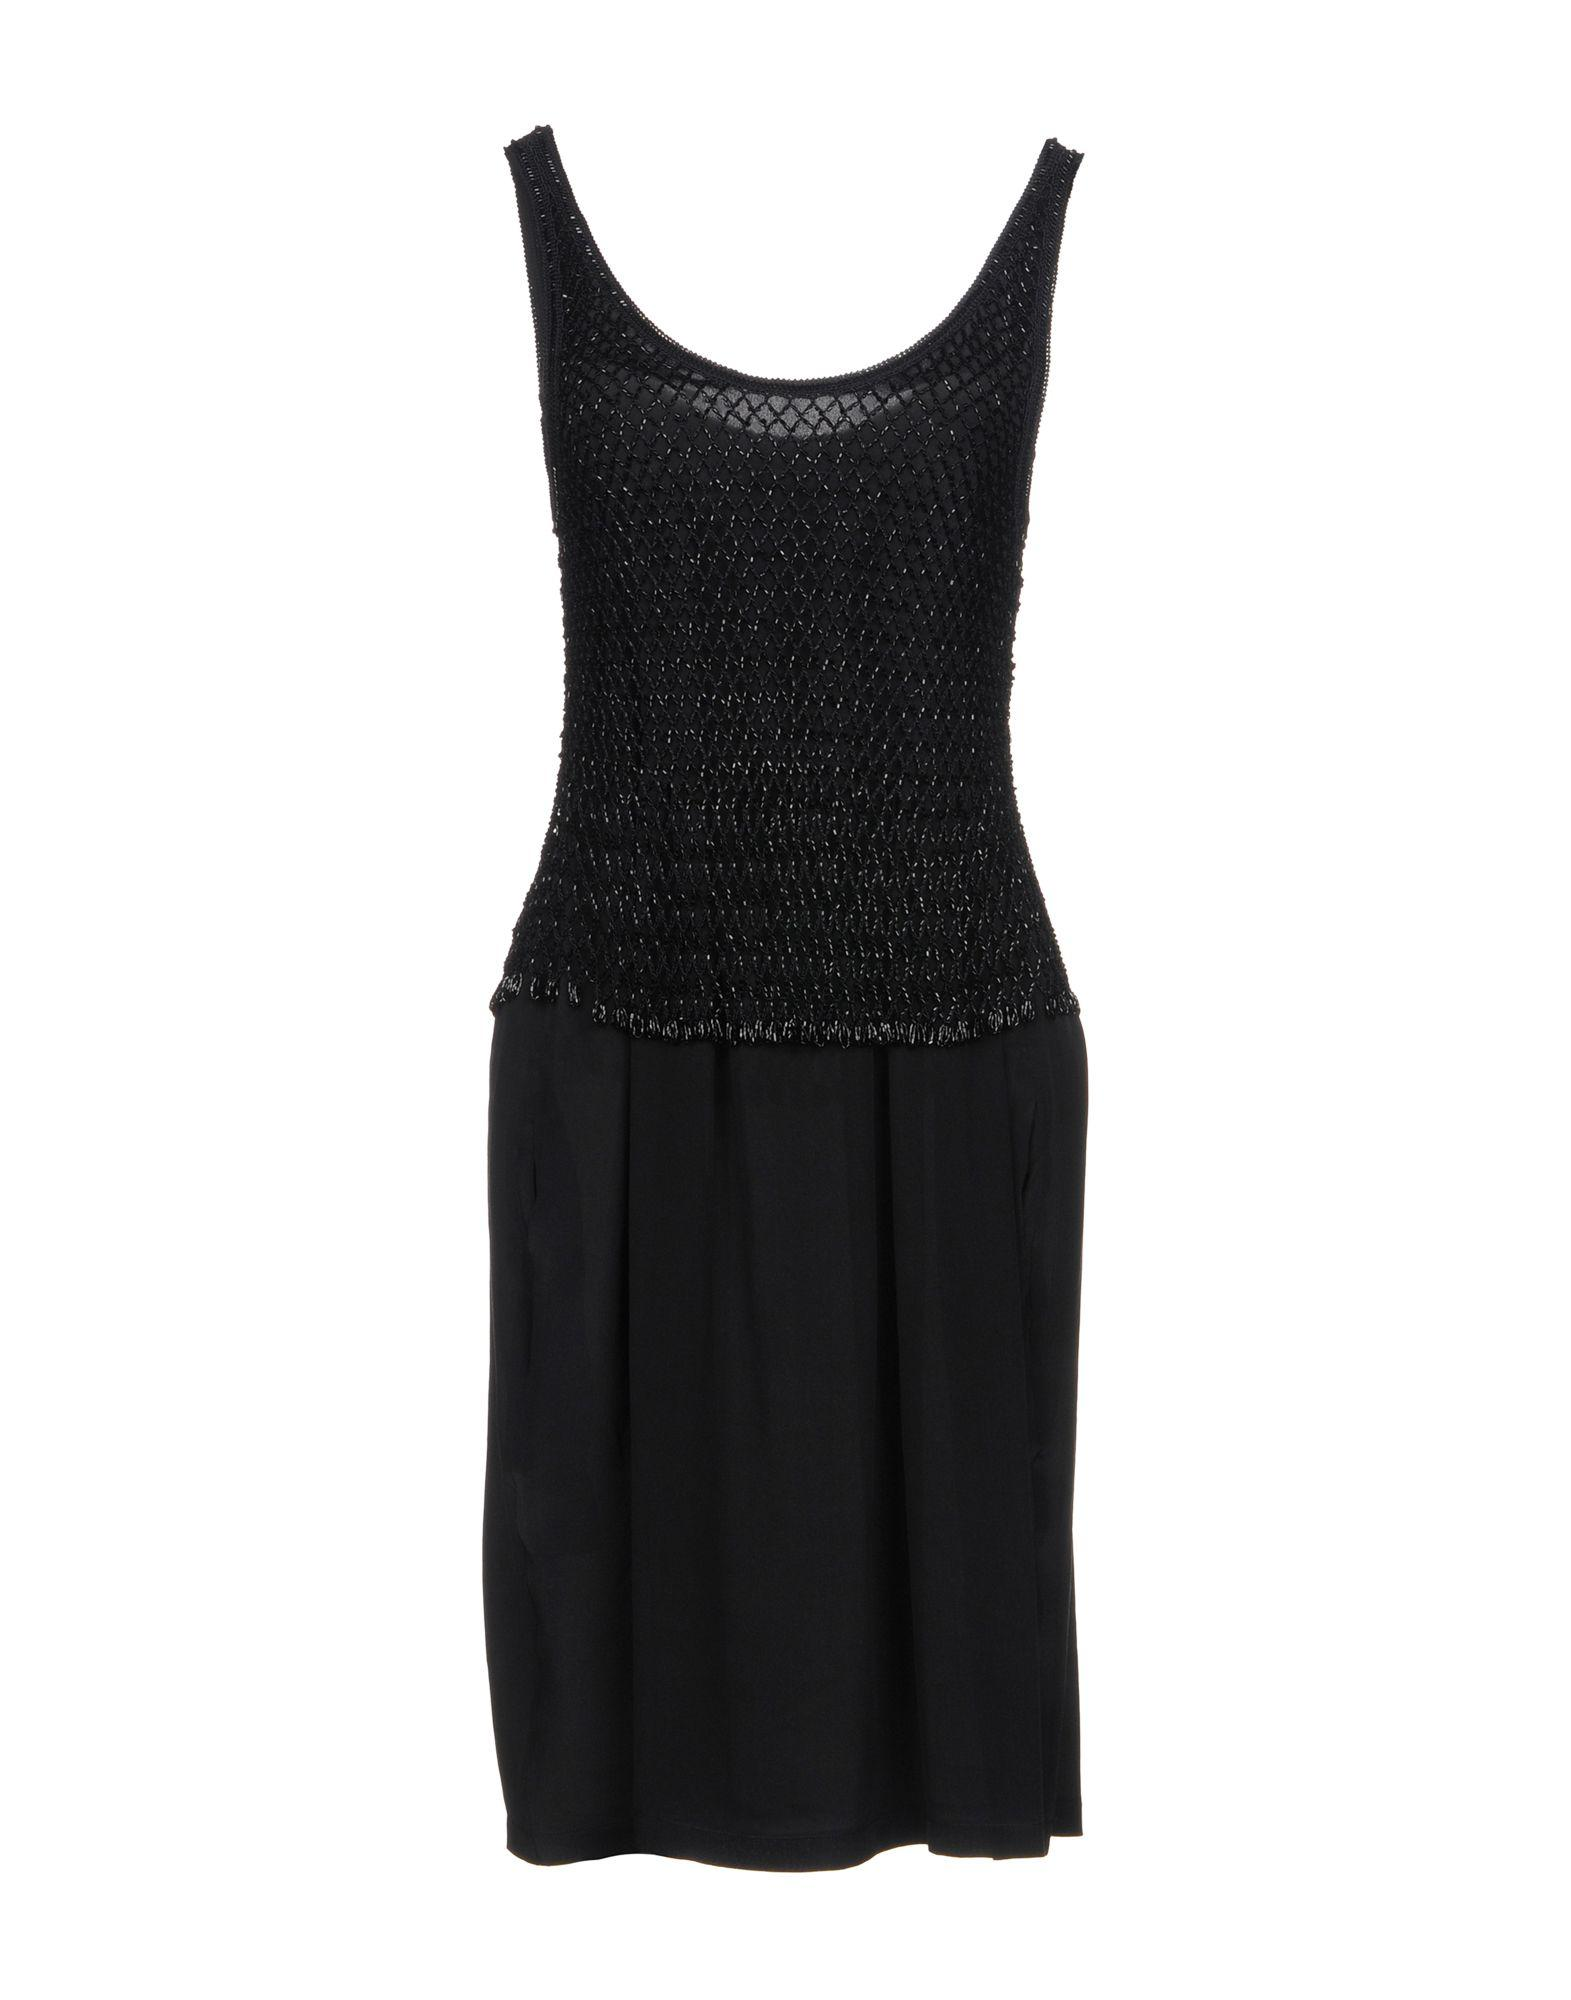 Moschino Cheap And Chic Short Dress In Black